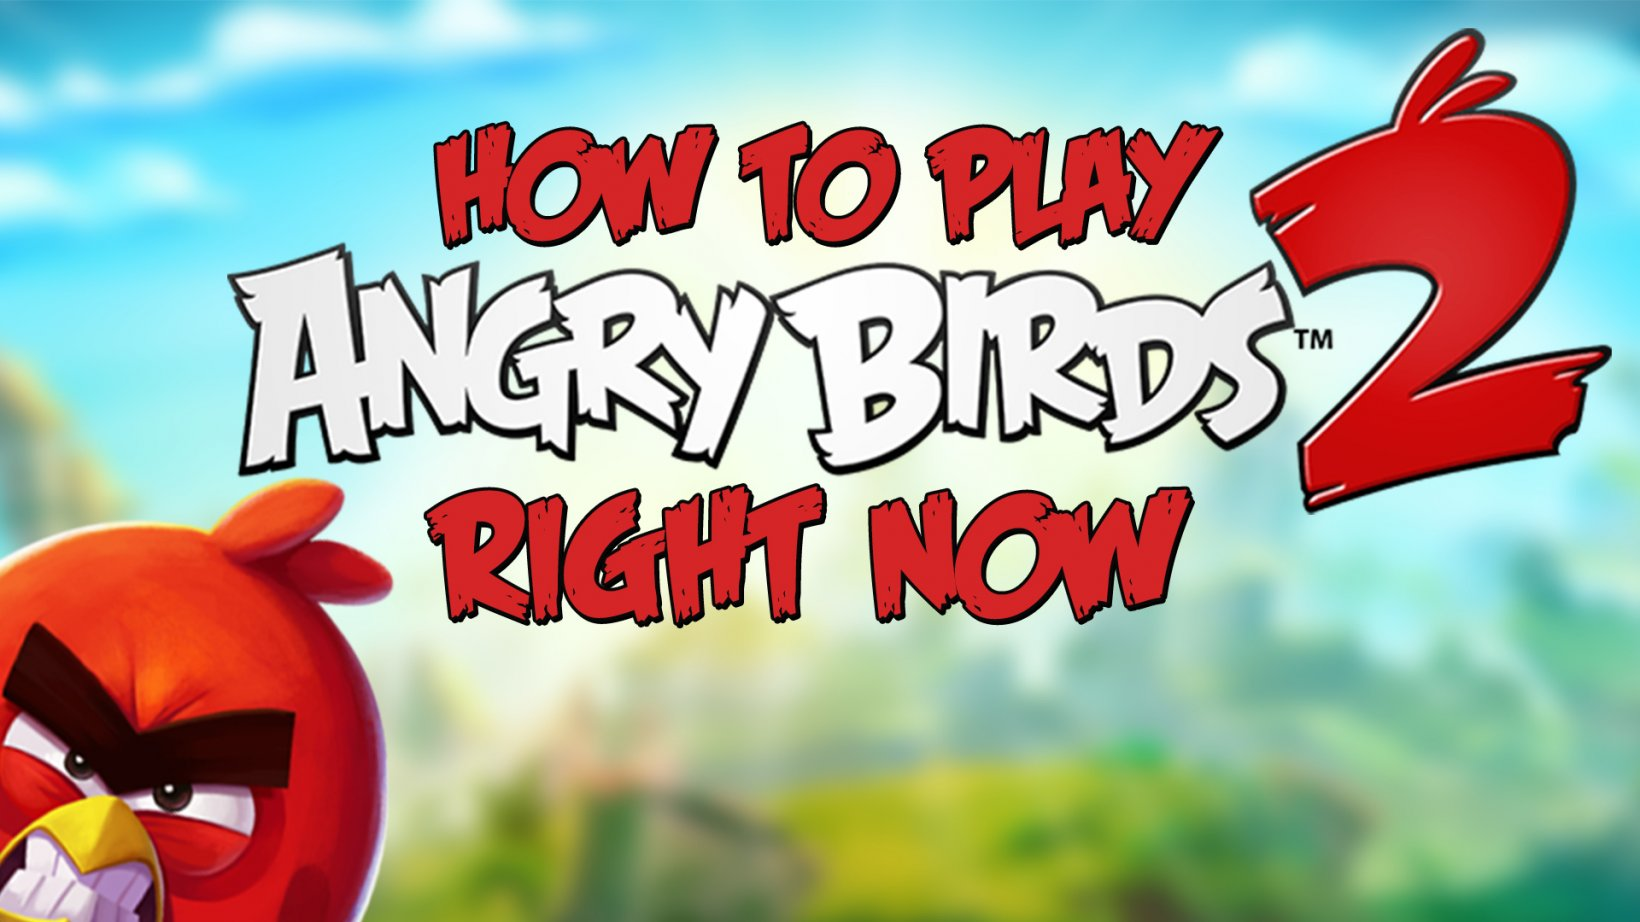 How to play Angry Birds 2... right now